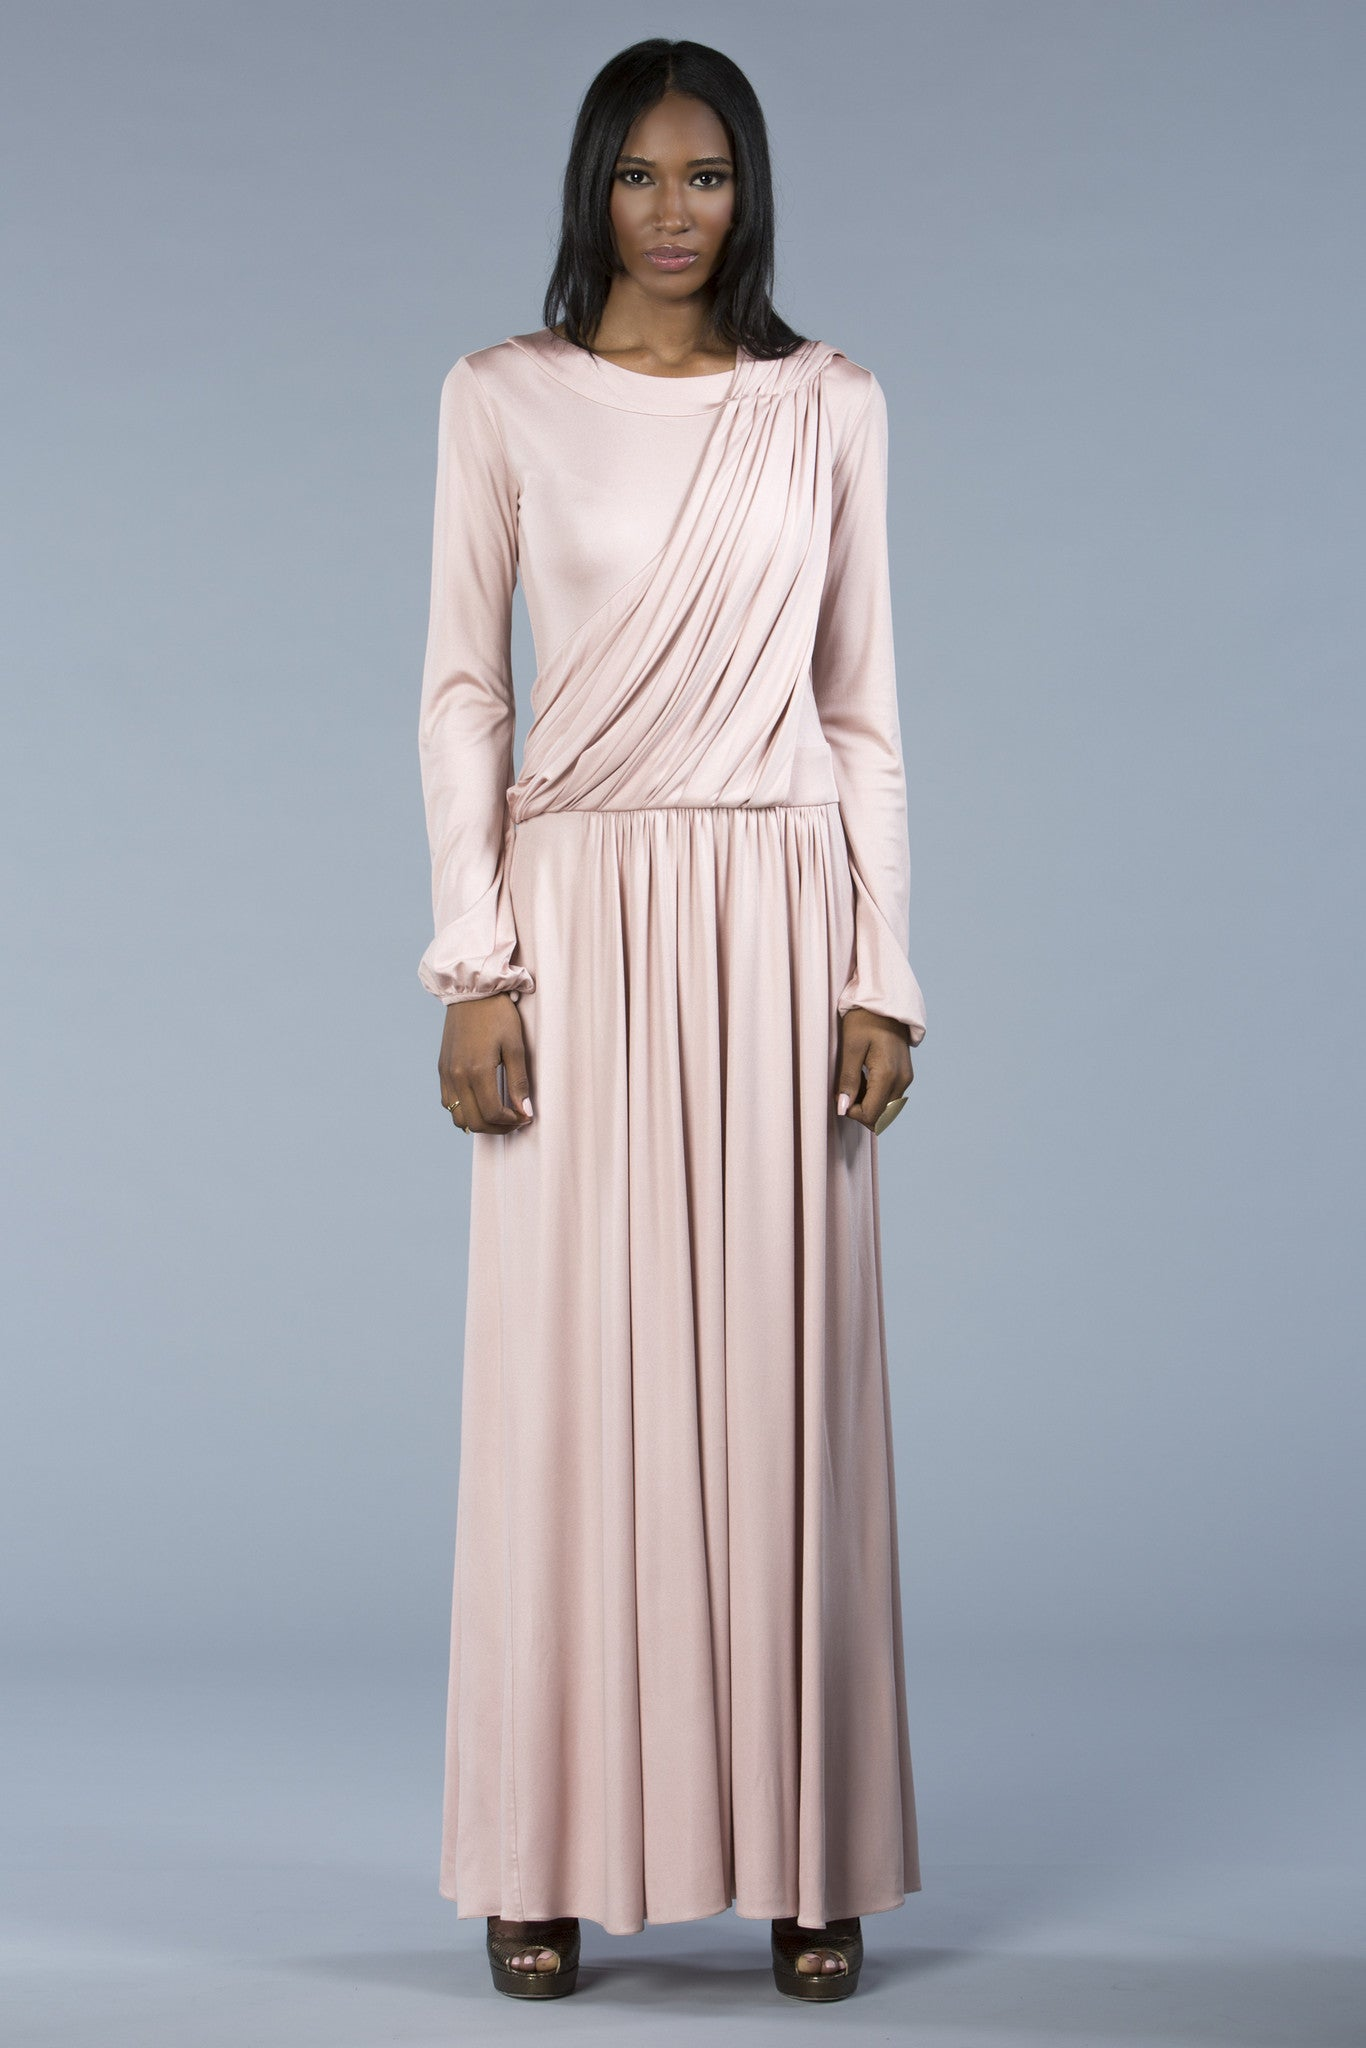 Long draped silk dress, elegant, versatile. Hijab option. Modest